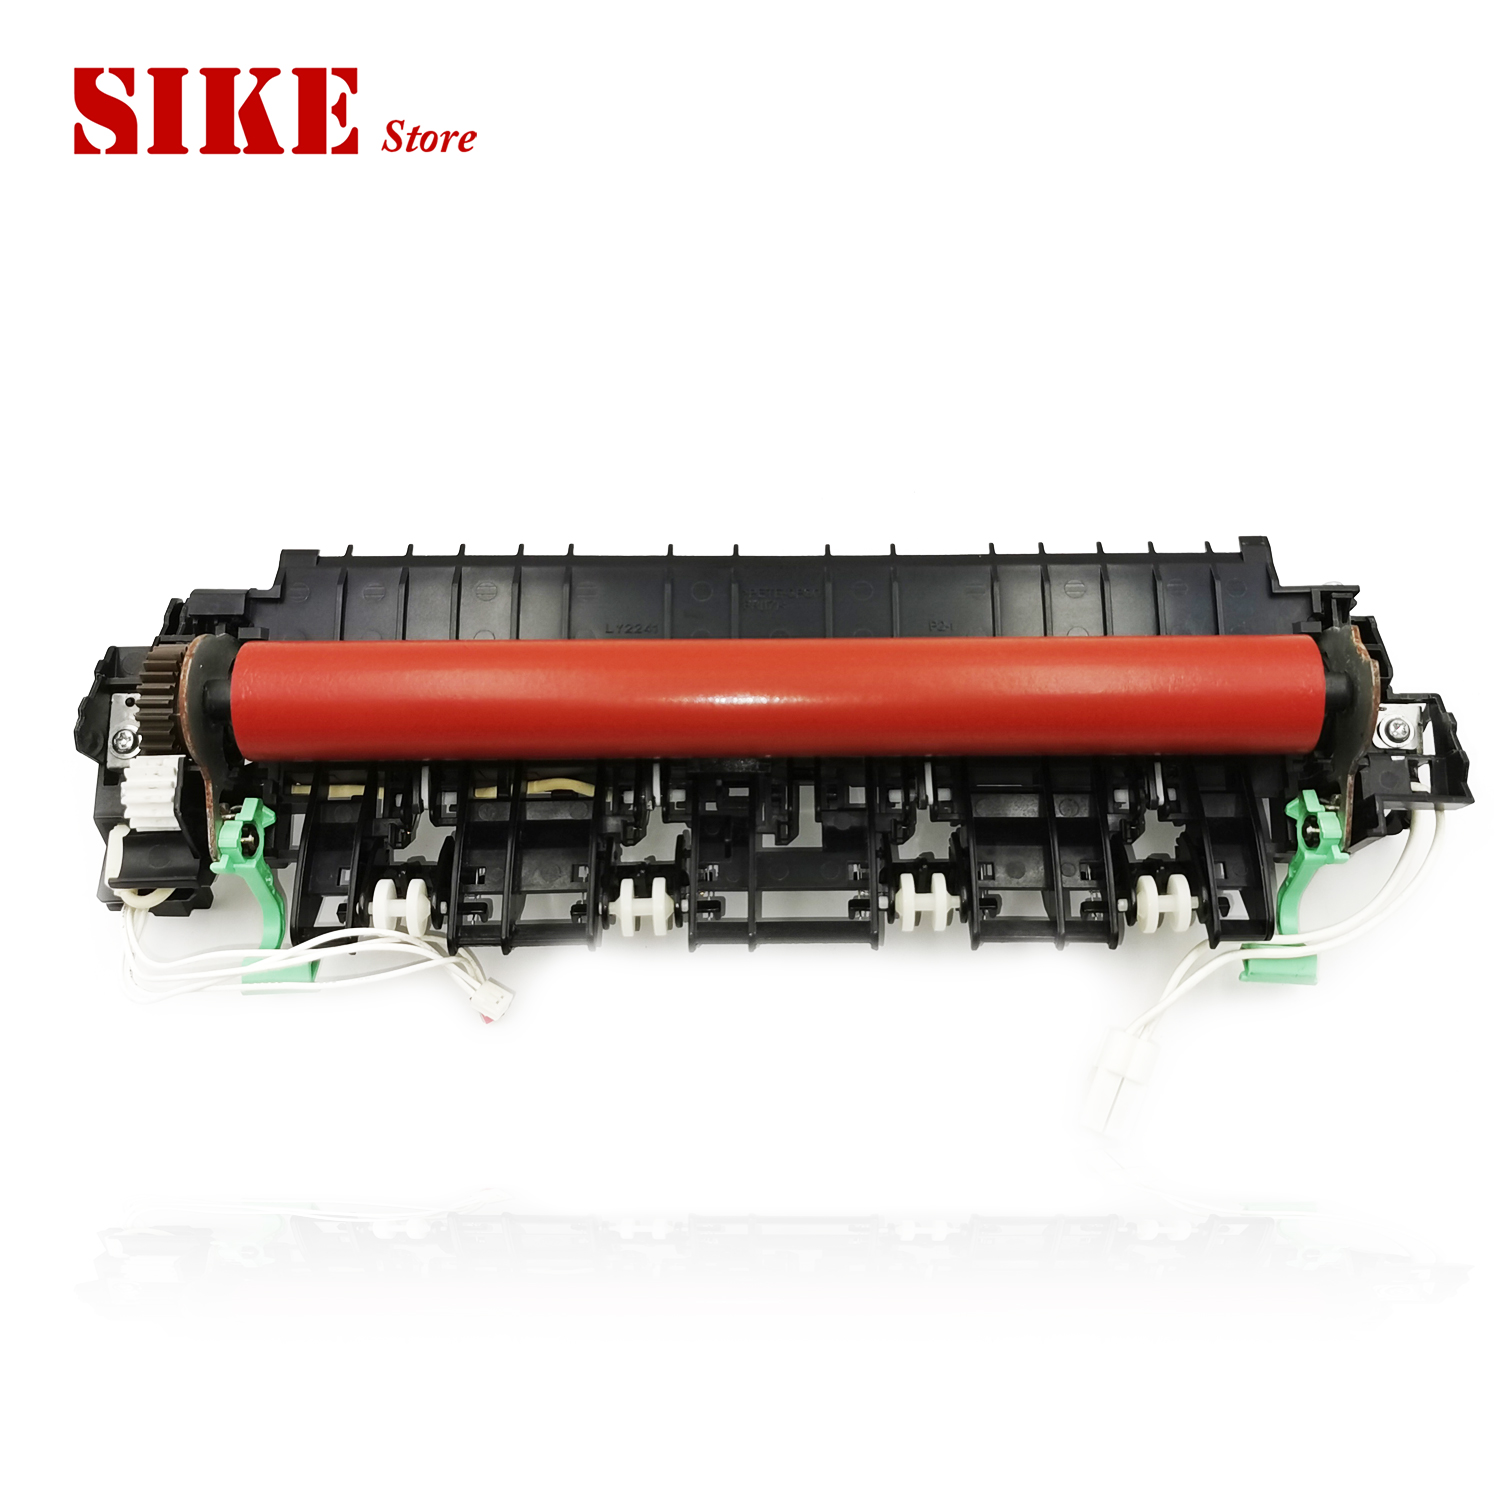 Fuser Unit Assy For Brother DCP-7055 DCP-7057 DCP-7070DW DCP7055 DCP7057 DCP 7050 7057 7070 Fuser Assembly LY2487001 LY3454001